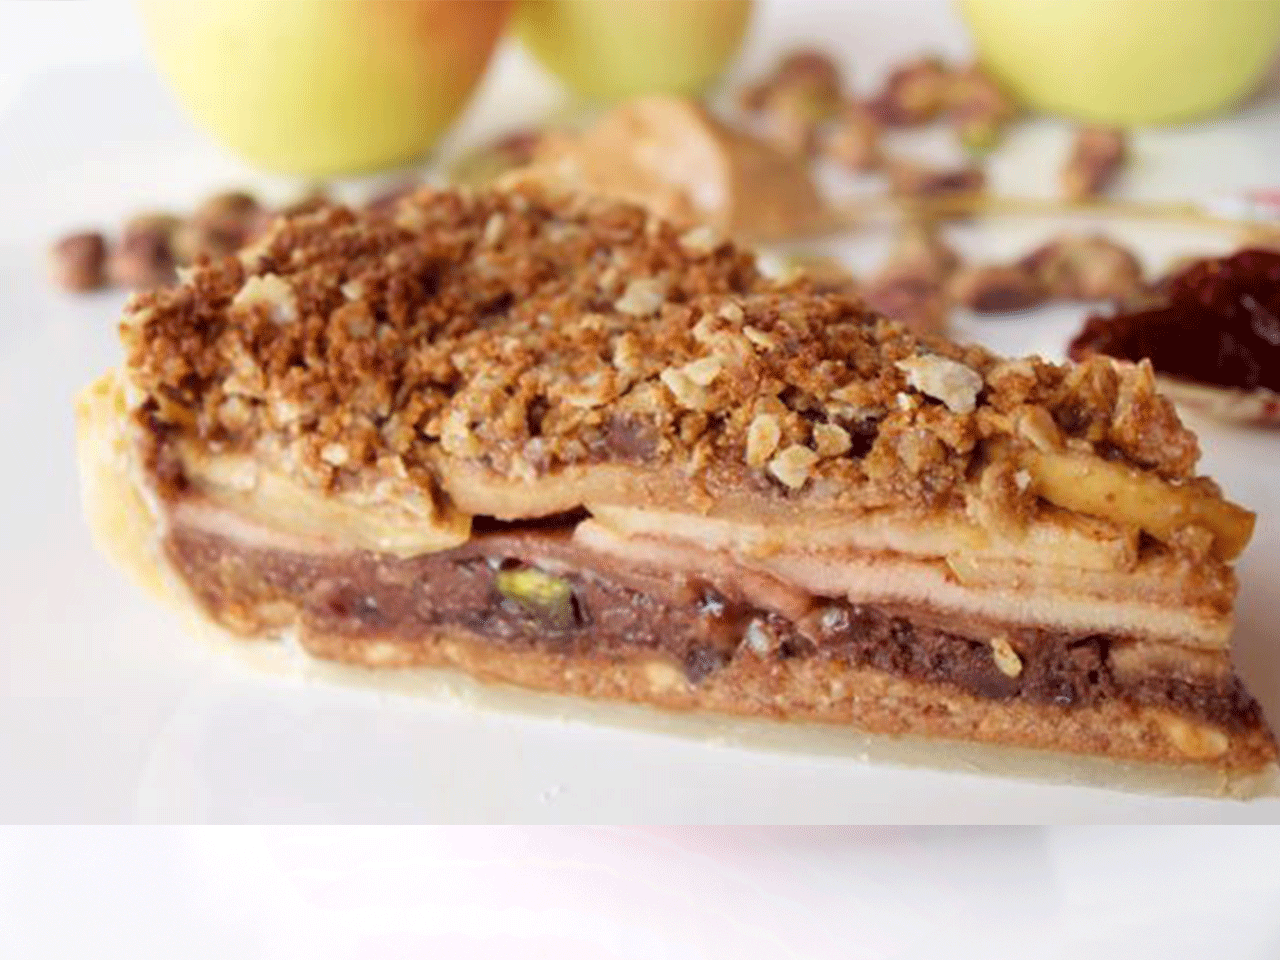 5-Layer Peanut Butter, Jam and Pistachio Apple Crumble Pie